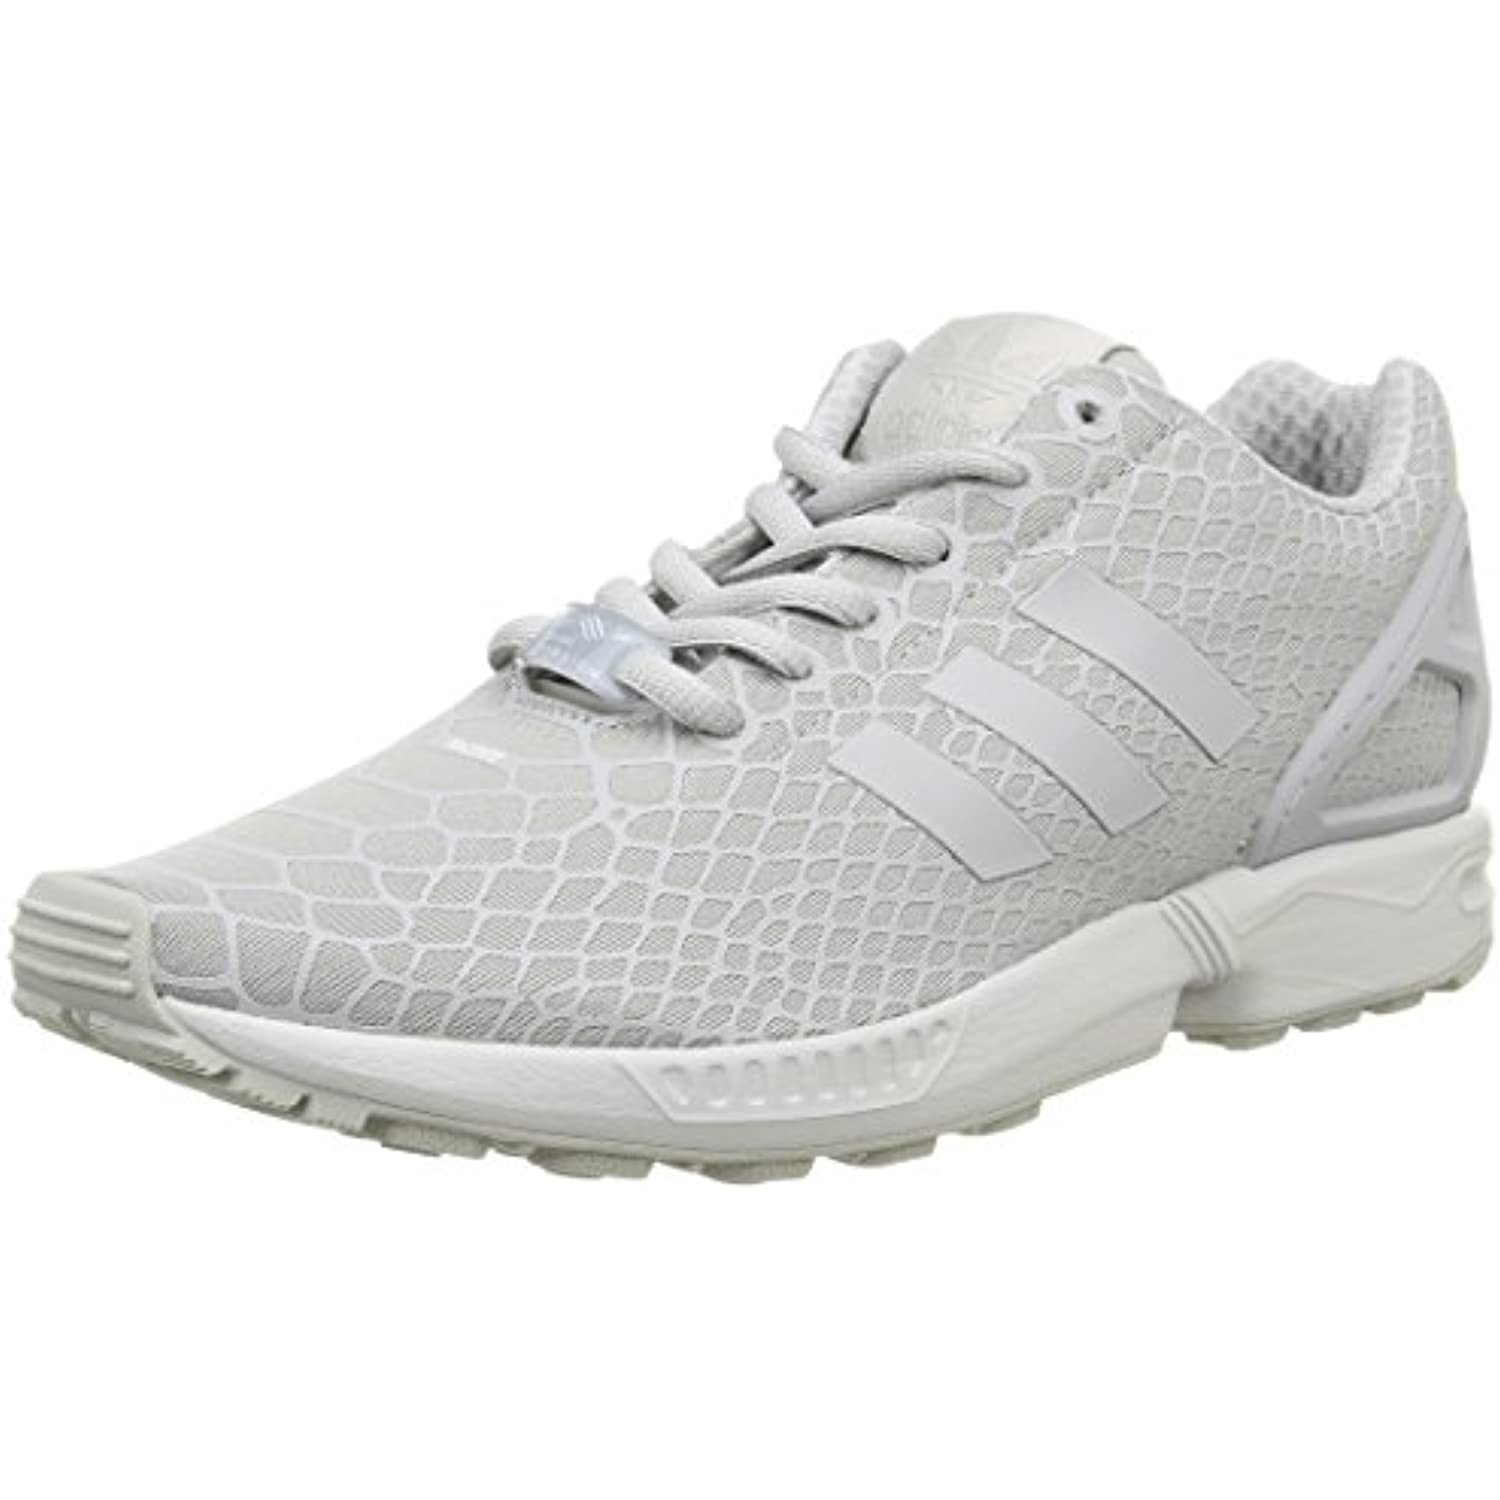 Adidas ZX Flux Sneakers Techfit, Sneakers Flux Basses Homme - B010R3RMDM - 8e0365